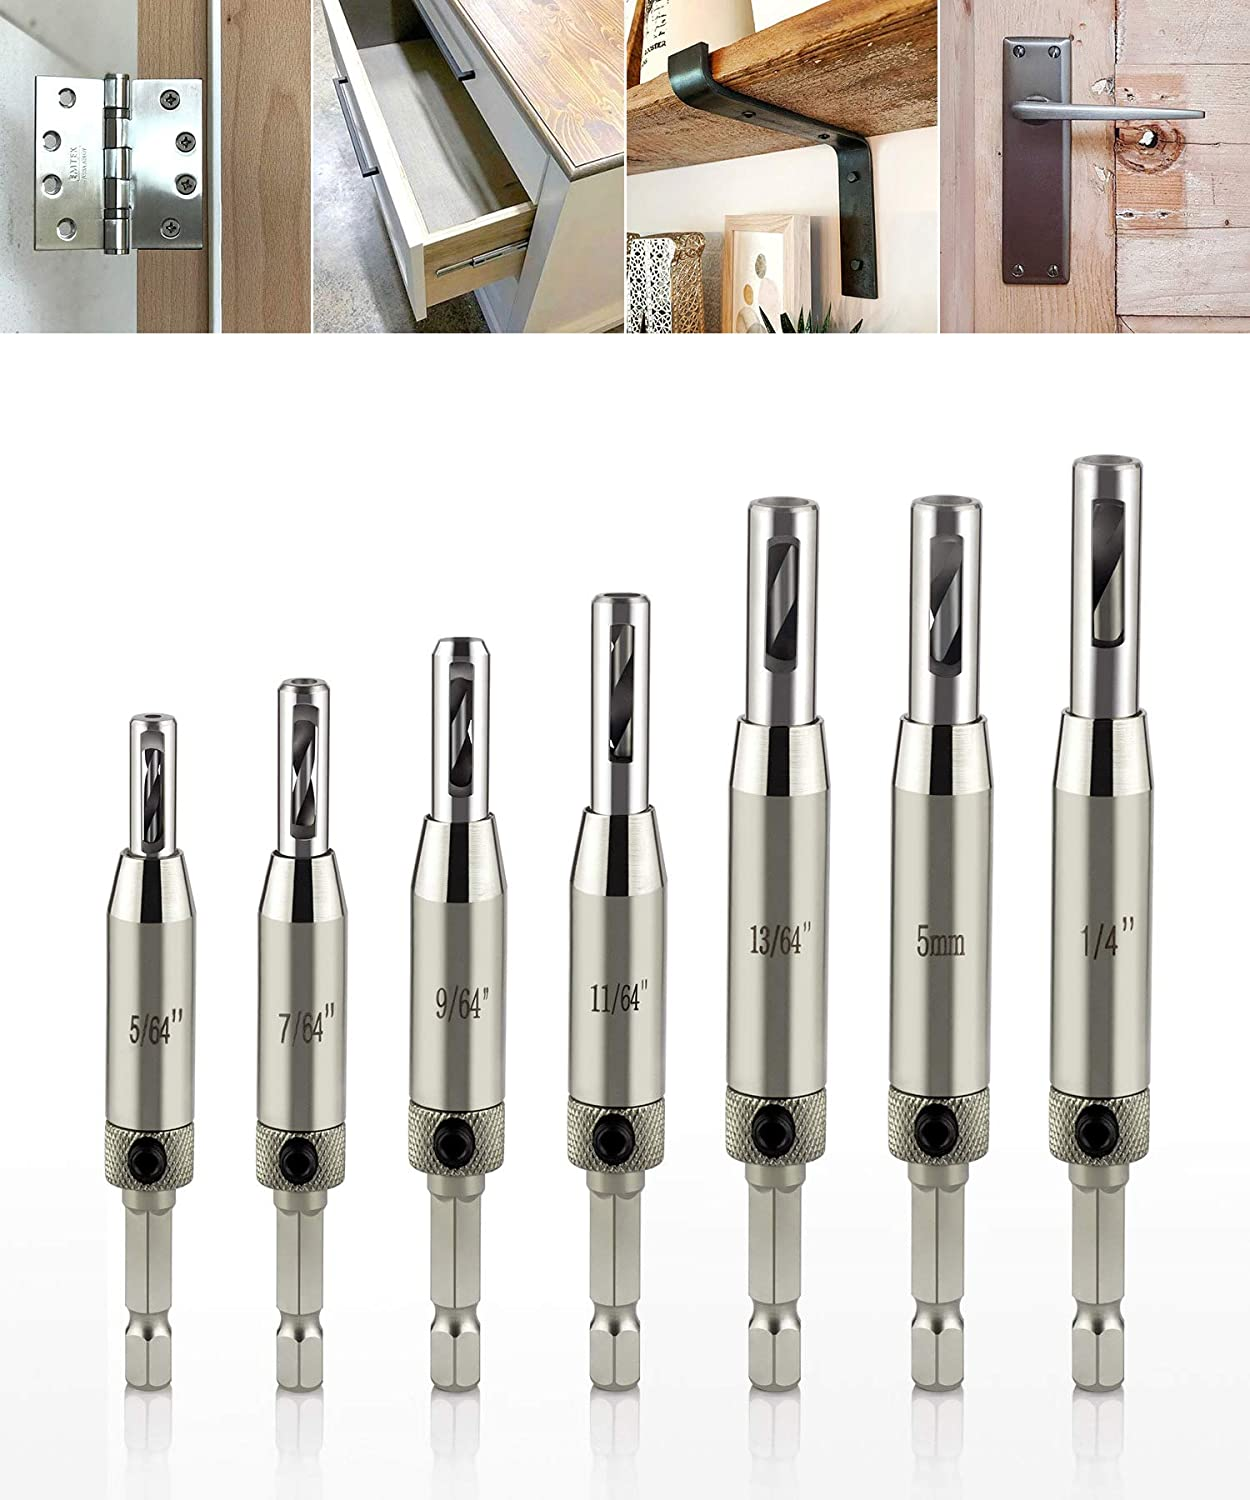 Self Centering Lock Hinge Drill Bits Set Stainless Steel Hardware Drilling Hole